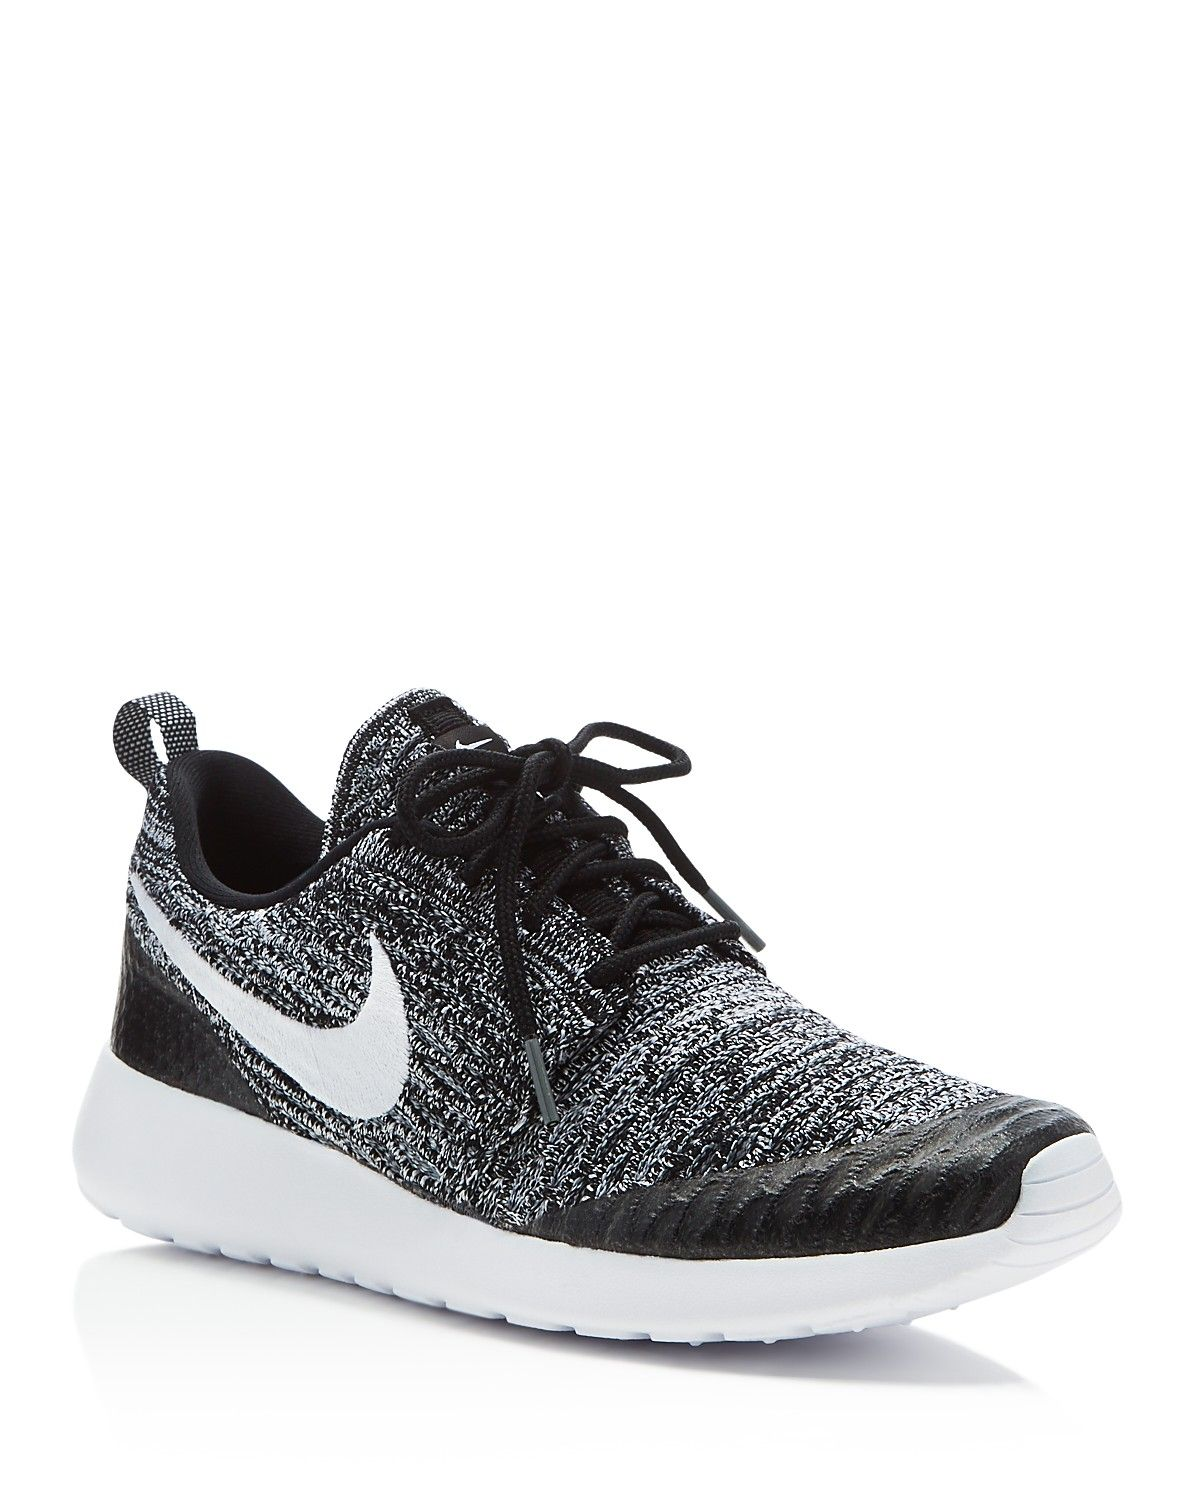 Nike Women's Roshe One Flyknit Sneakers